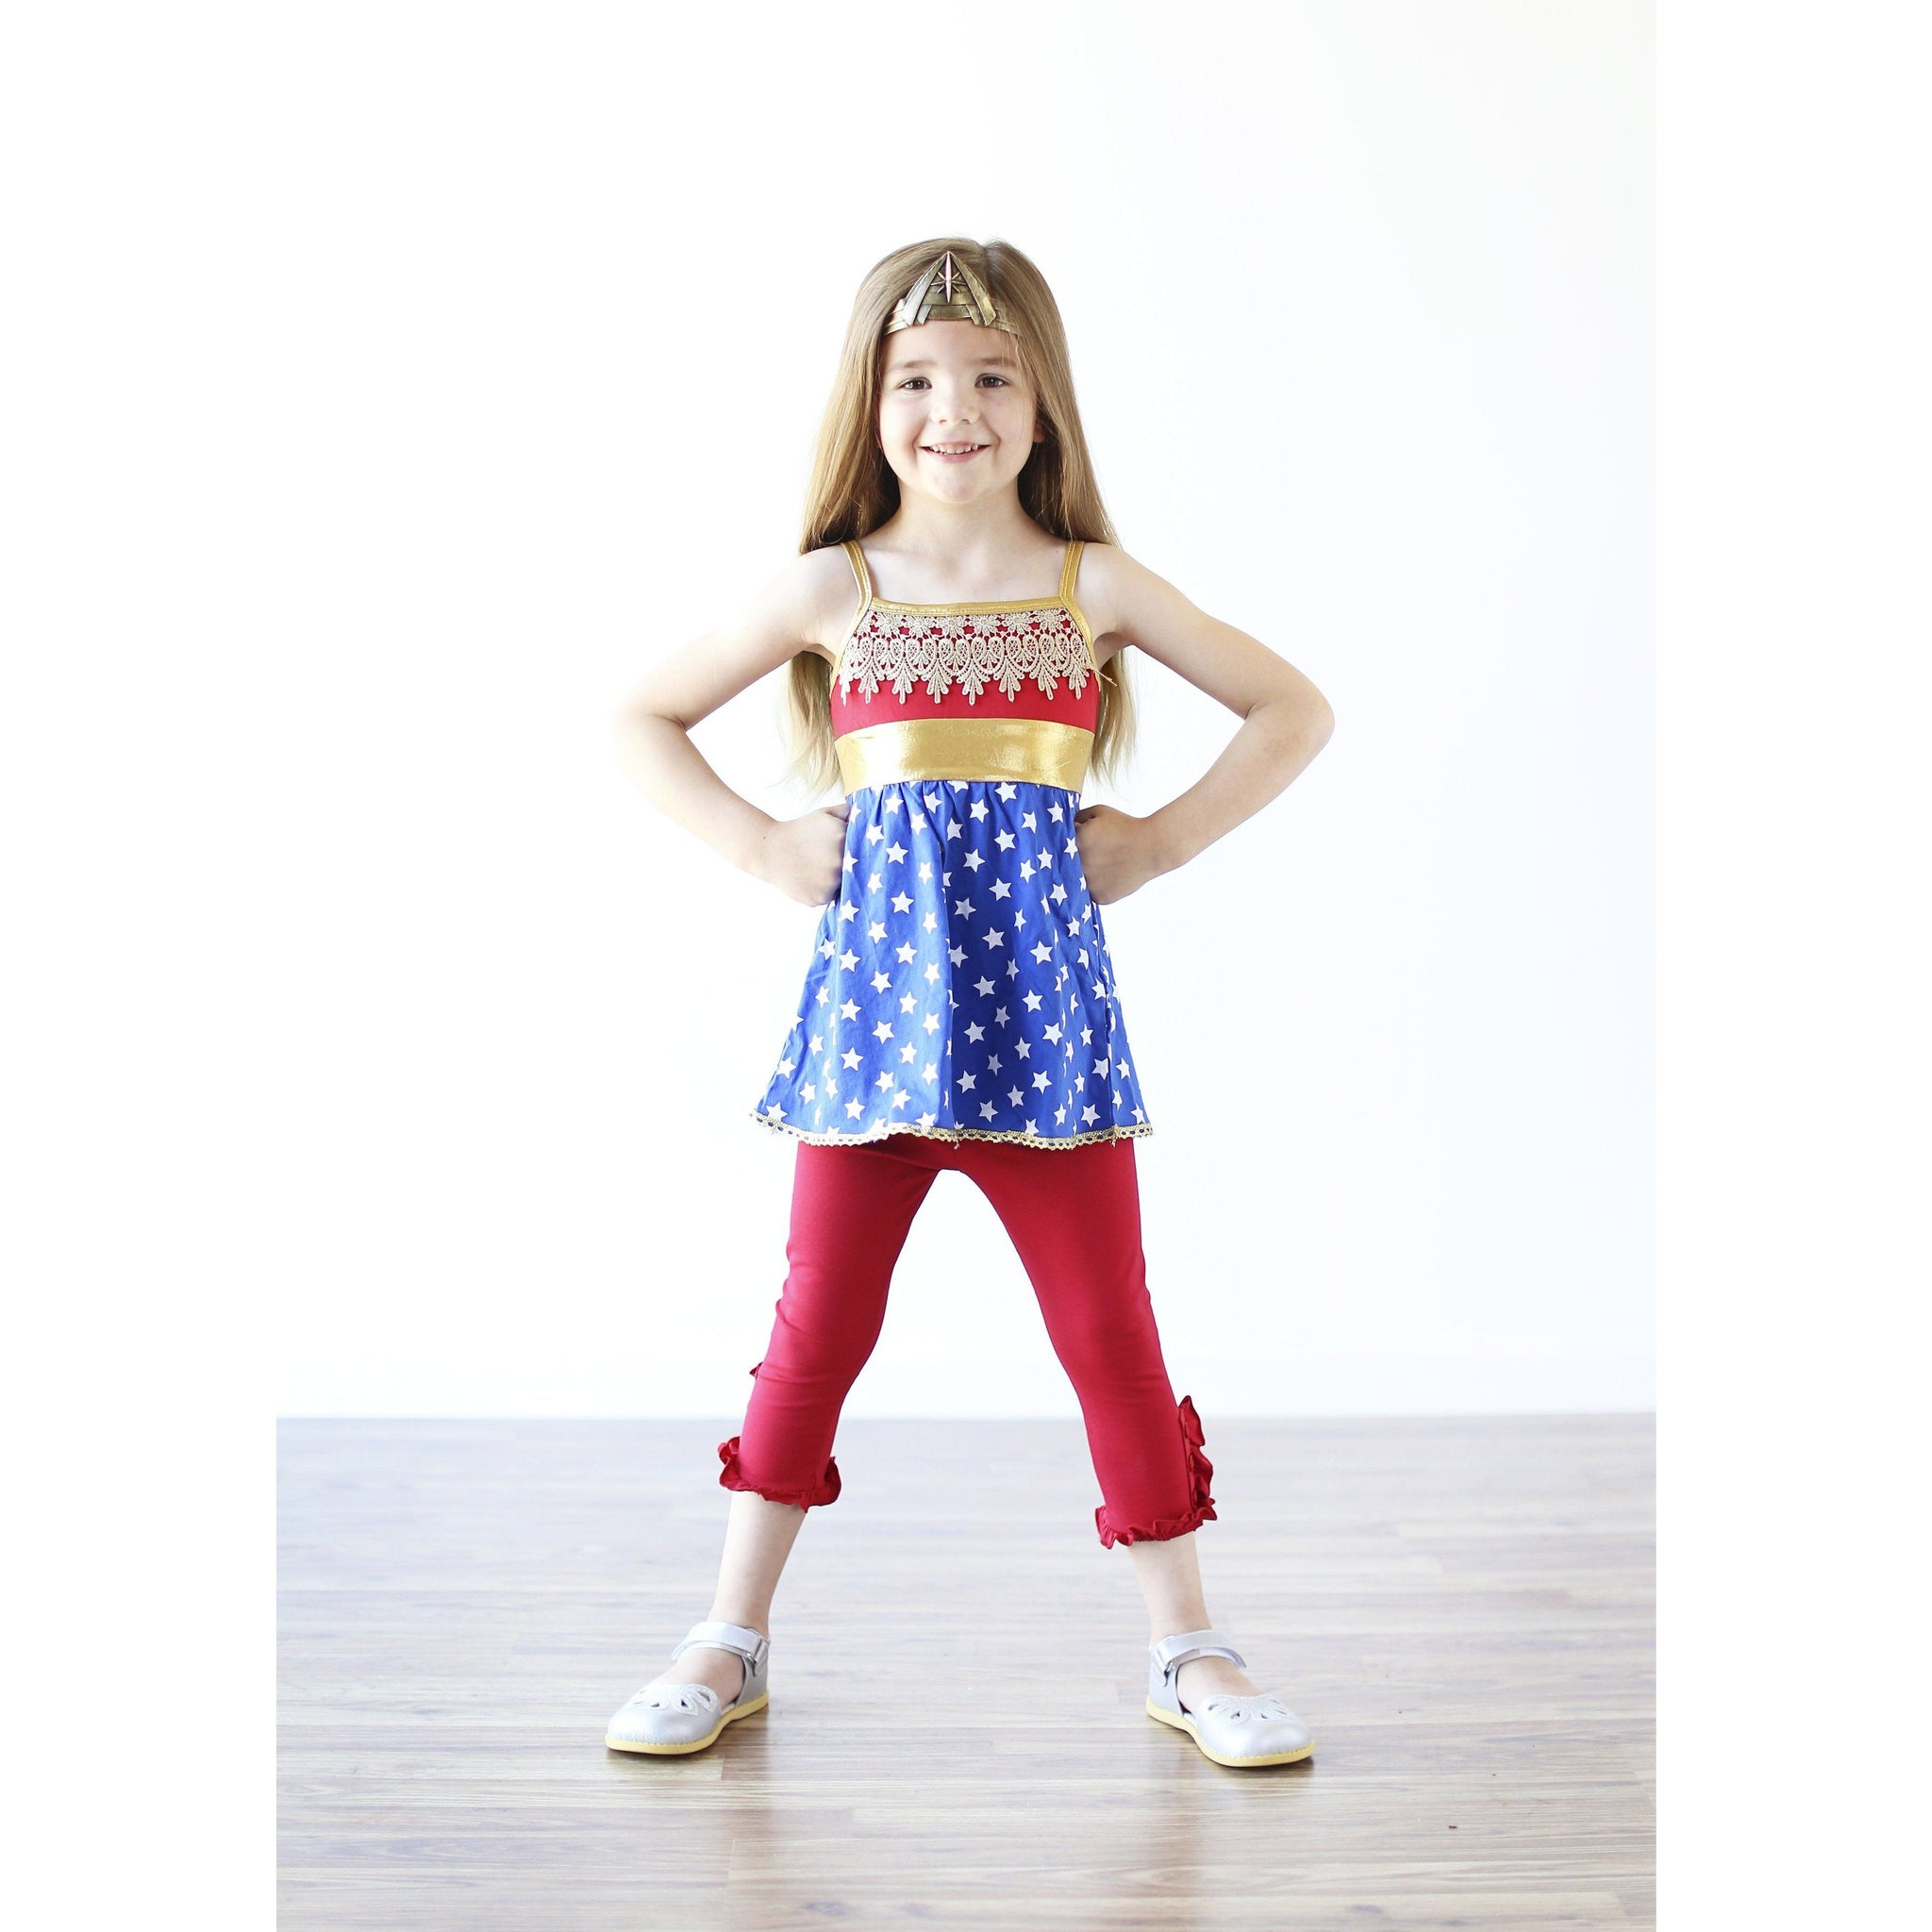 Adorable Essentials, Wonder Woman Inspired / Playground Princess,Playground Princess,Adorable Essentials, LLC